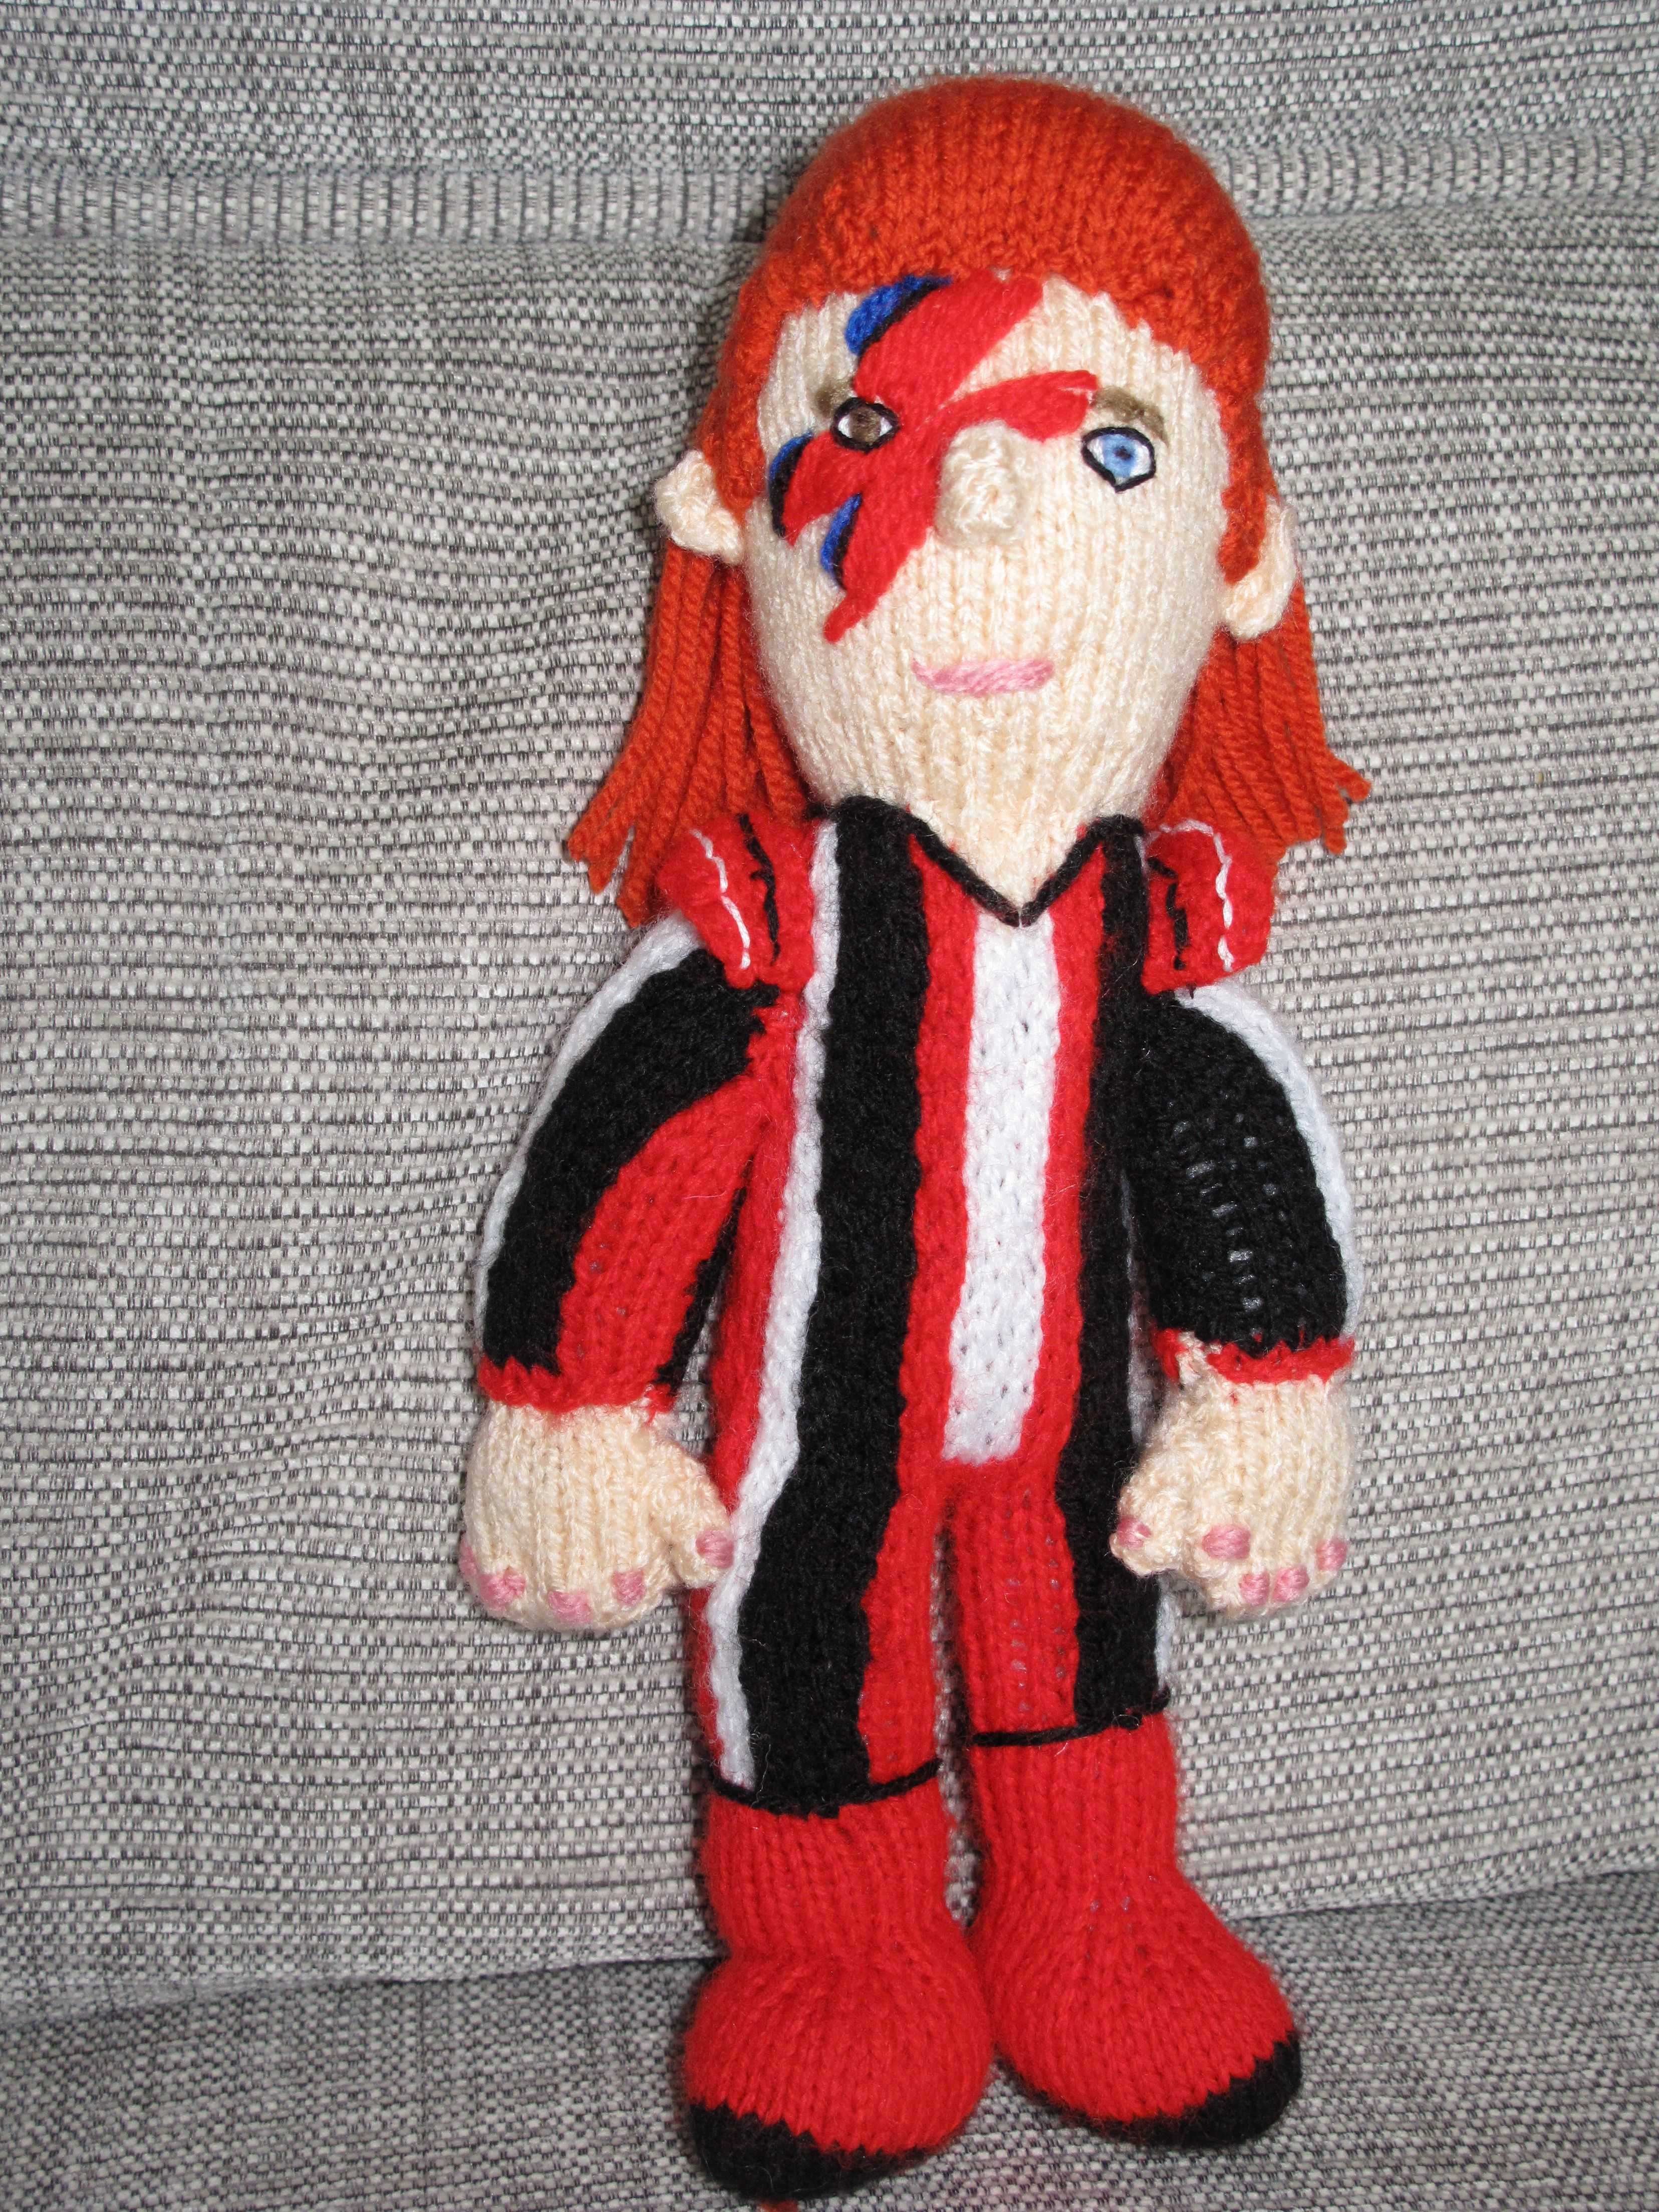 Knitted David Bowie #Knitting #Crafts #KnittedCelebrities ...